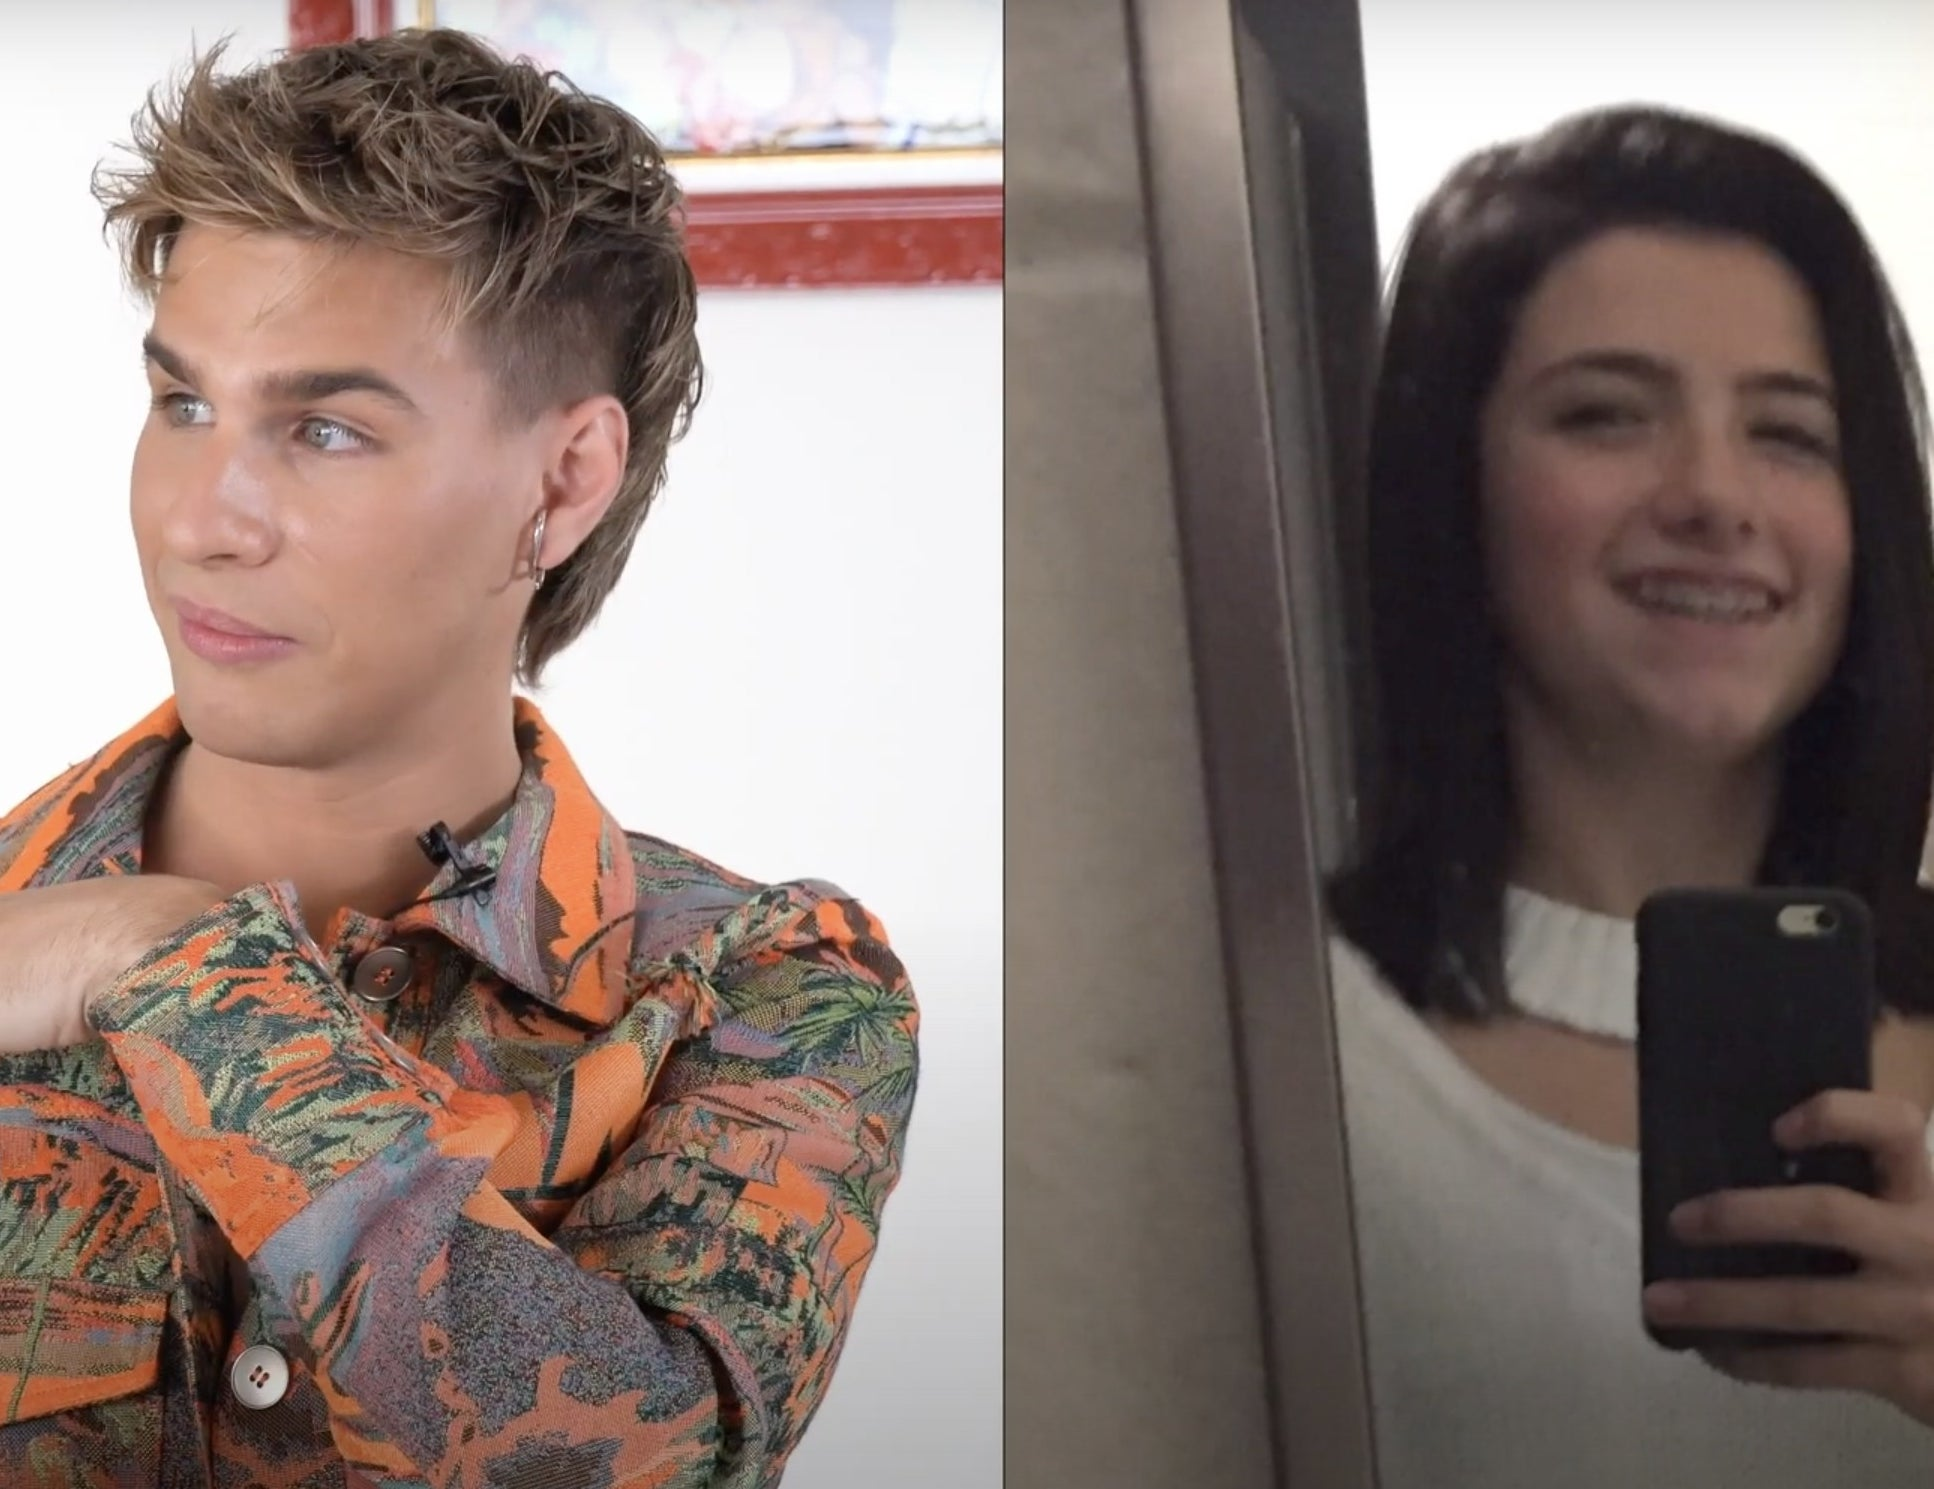 Brad points out how deep Charli's hair part was in an old photo